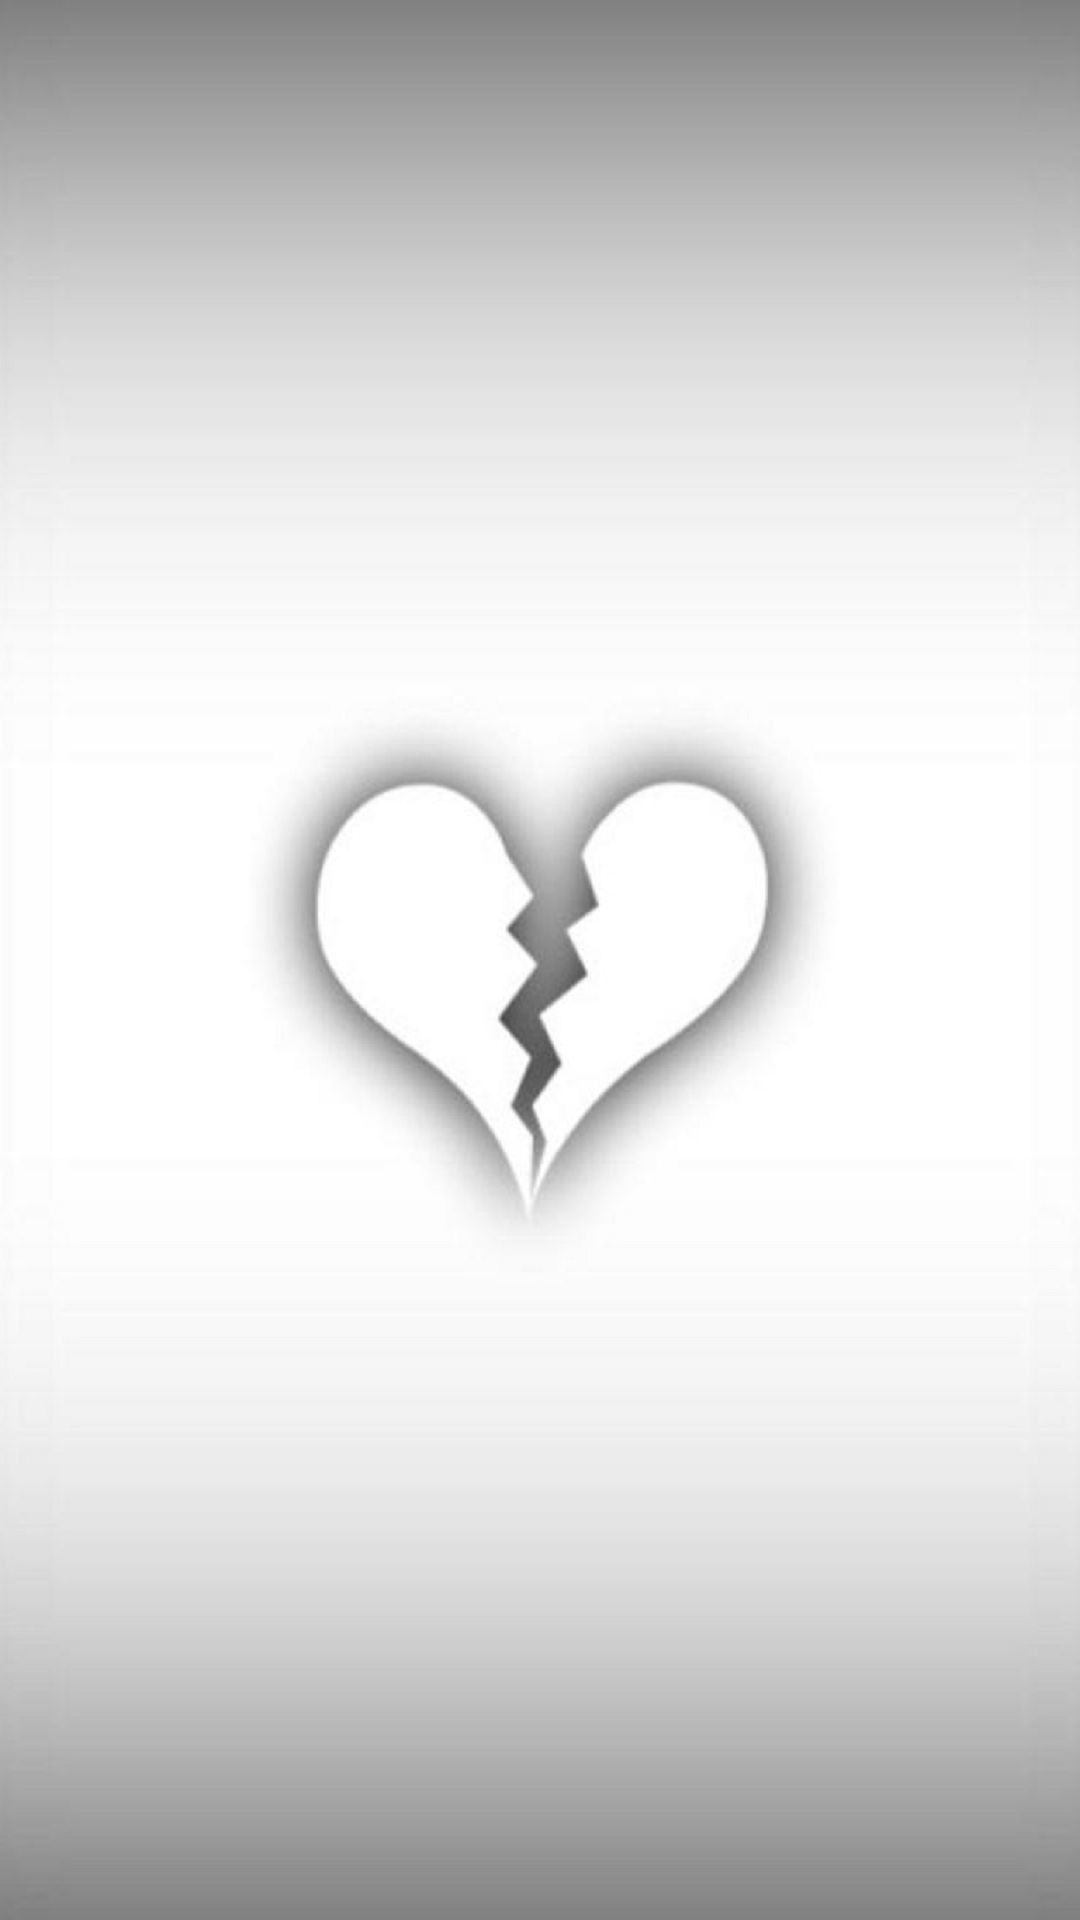 1080x1920 Minimalist White Broken Heart Android Wallpaper ...